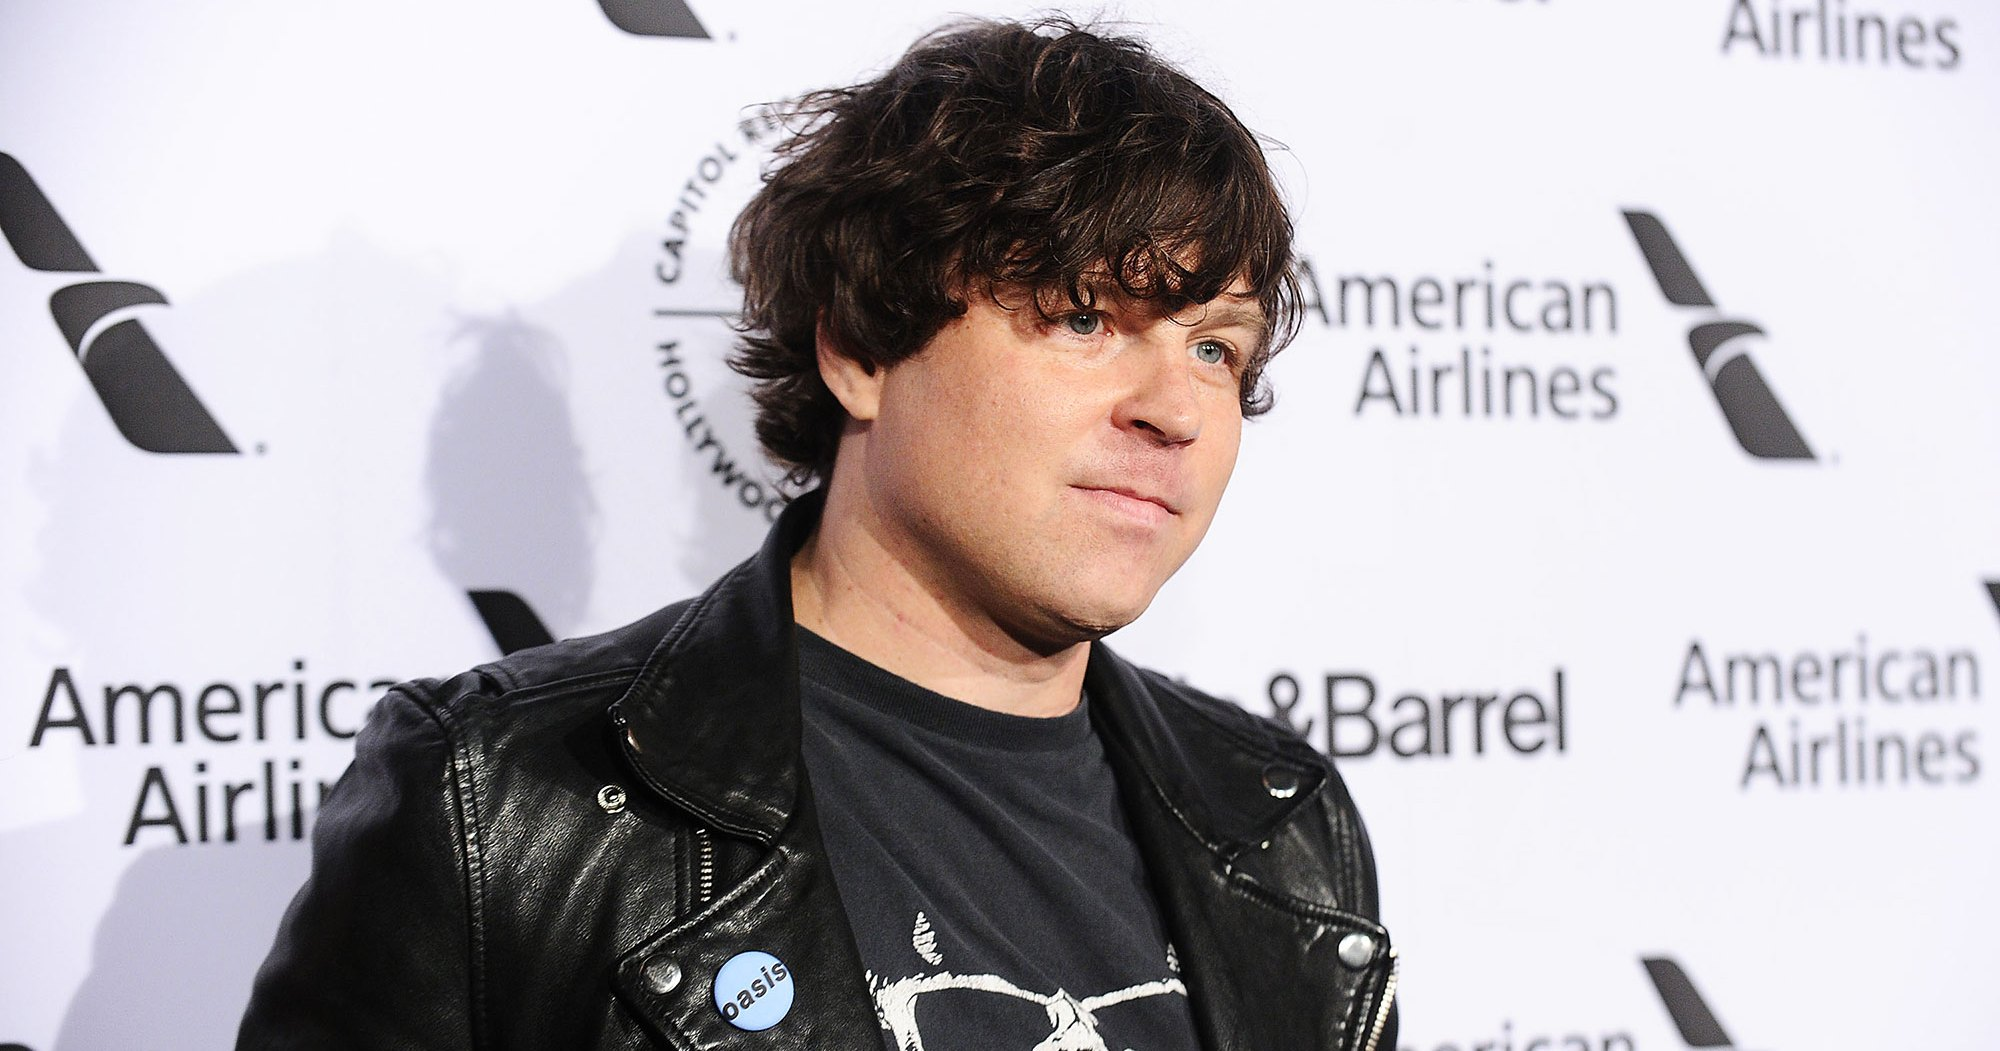 Ryan Adams: My Marriage to Mandy Moore Was 'Doomed From the Start'